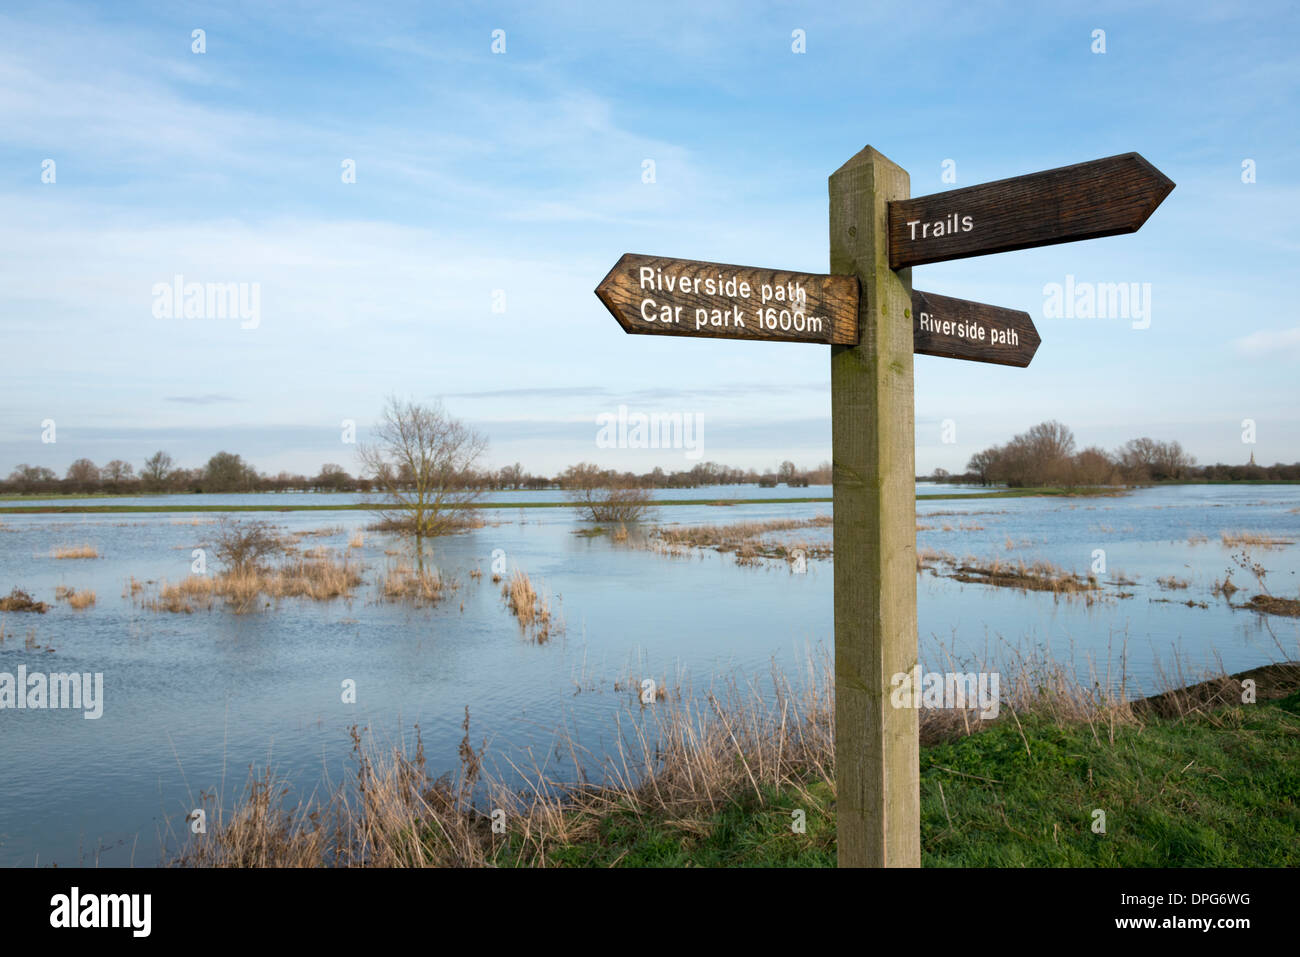 a direction signpost for a riverside footpath in cambridgeshire uk